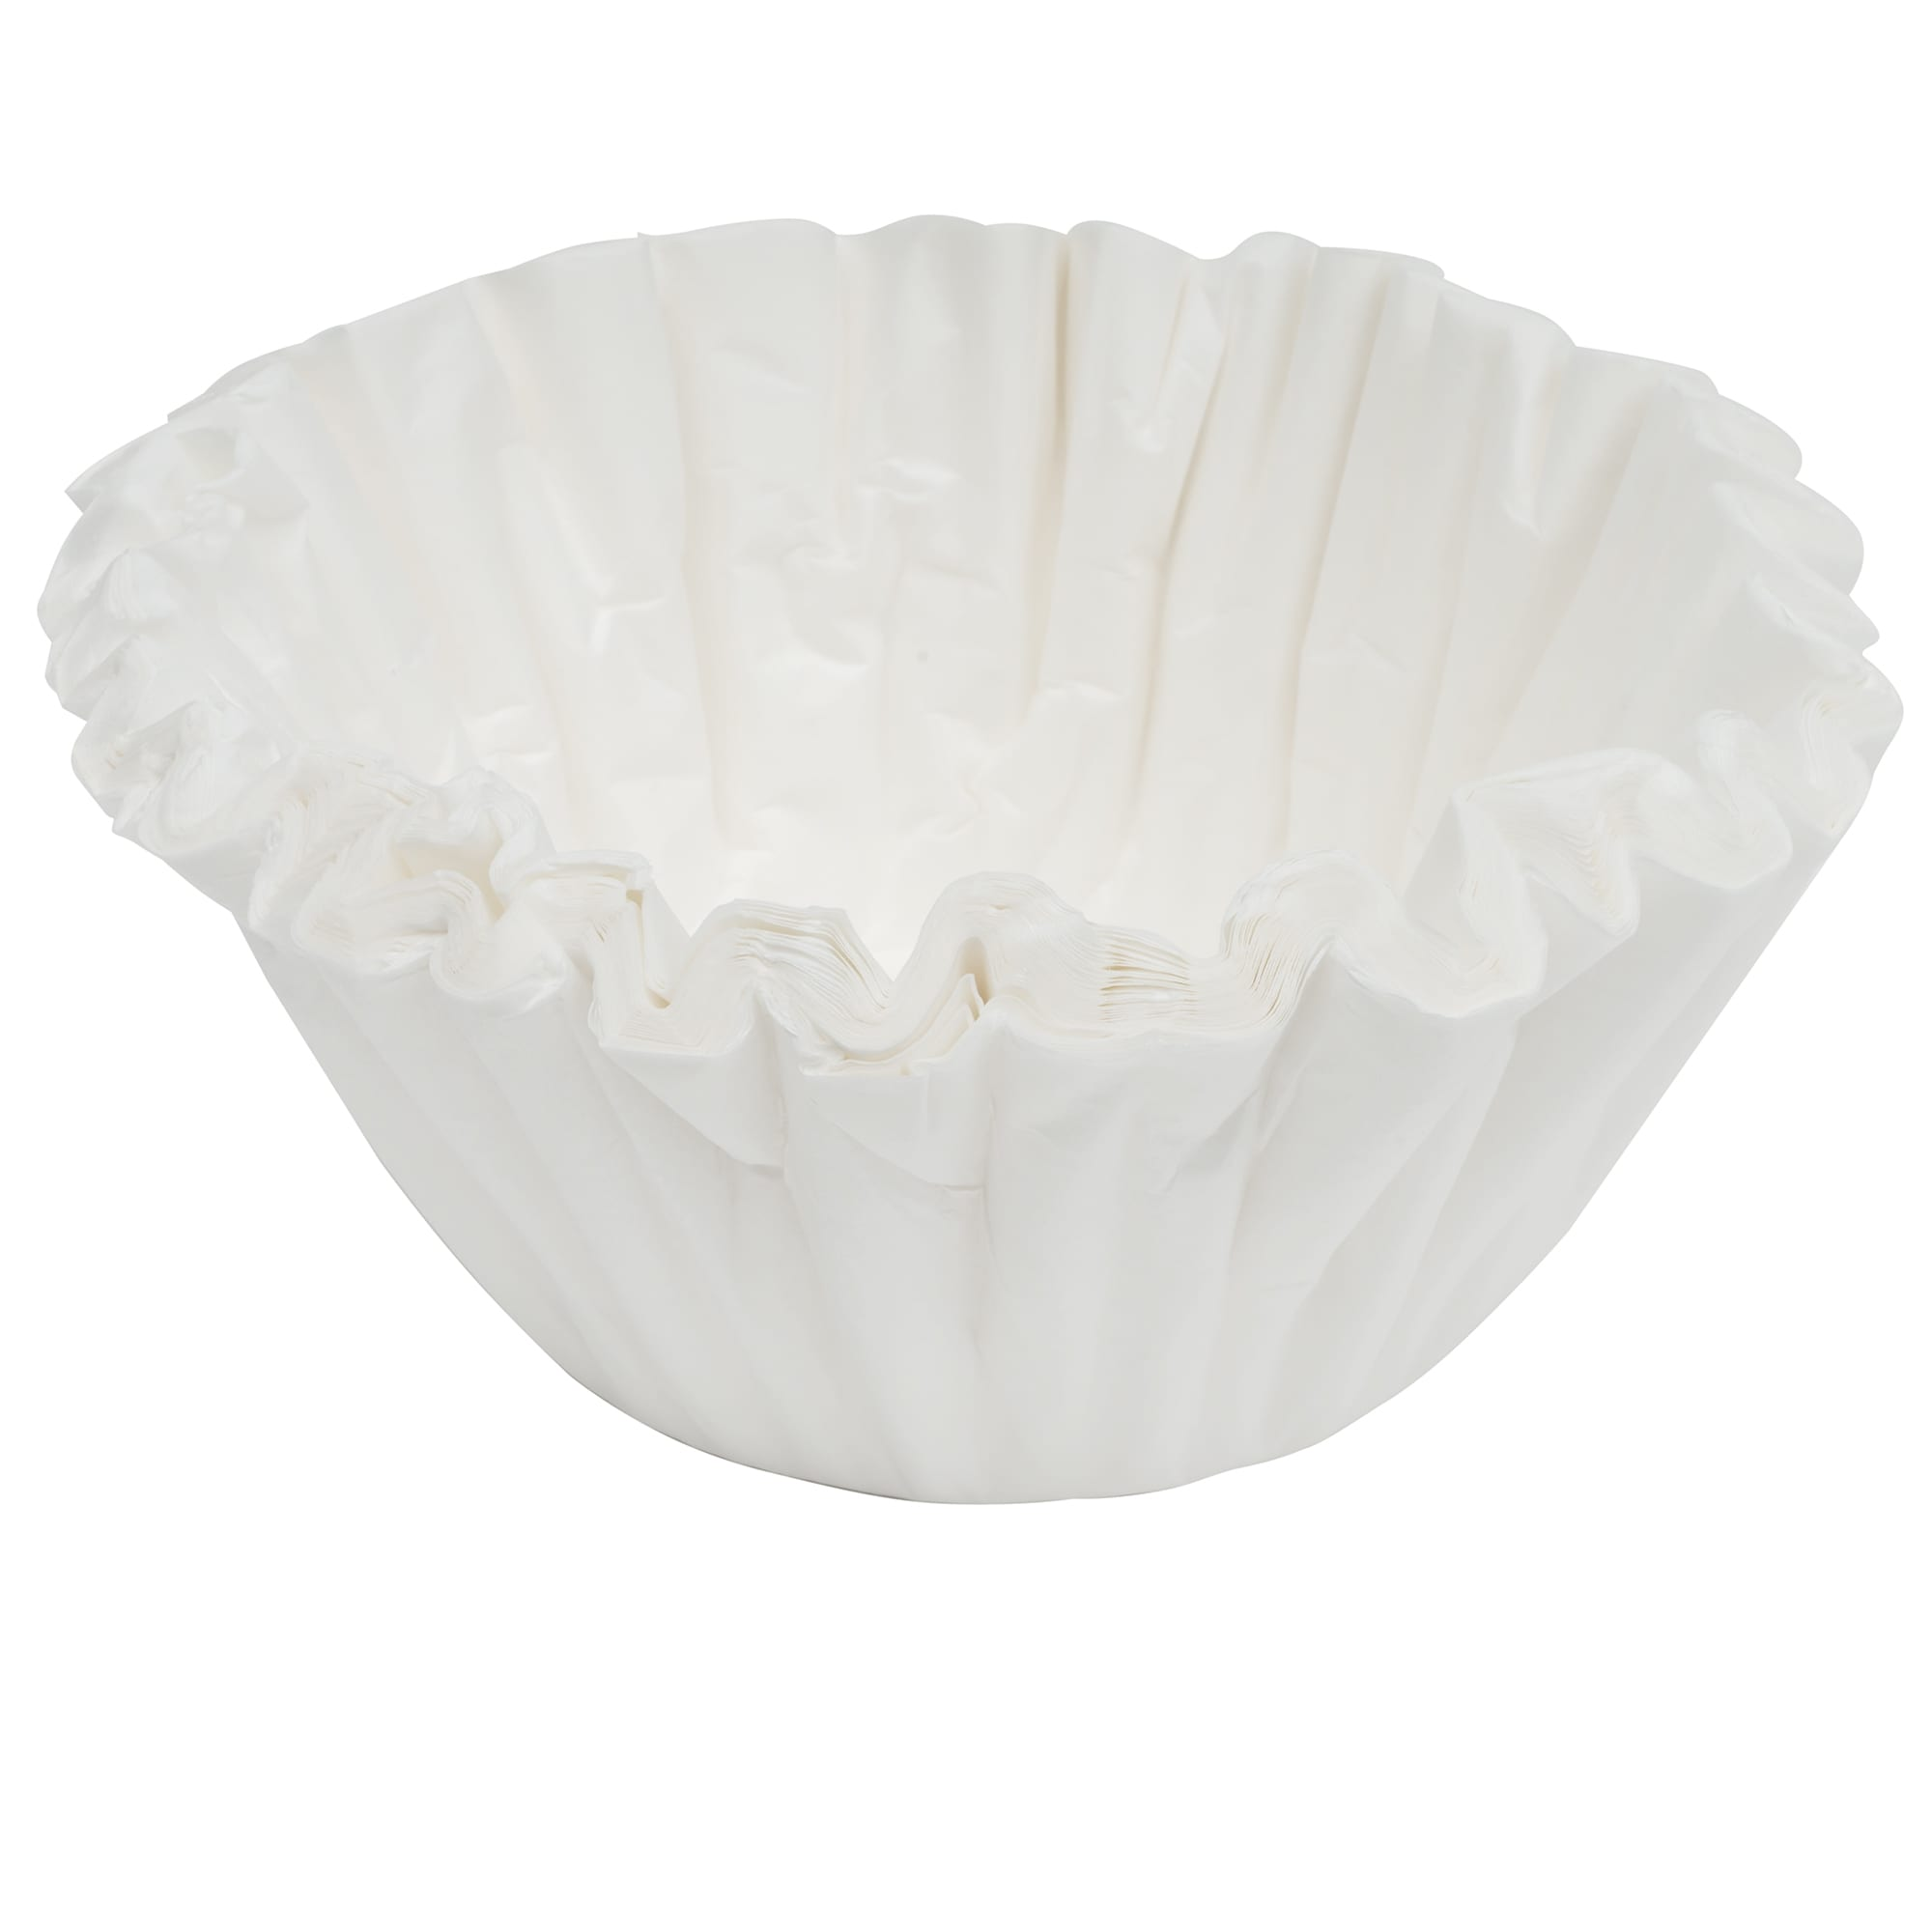 Bunn 20138.1000 Paper Filters for 1.5 gal Tea & Coffee Urns (20138.1000)